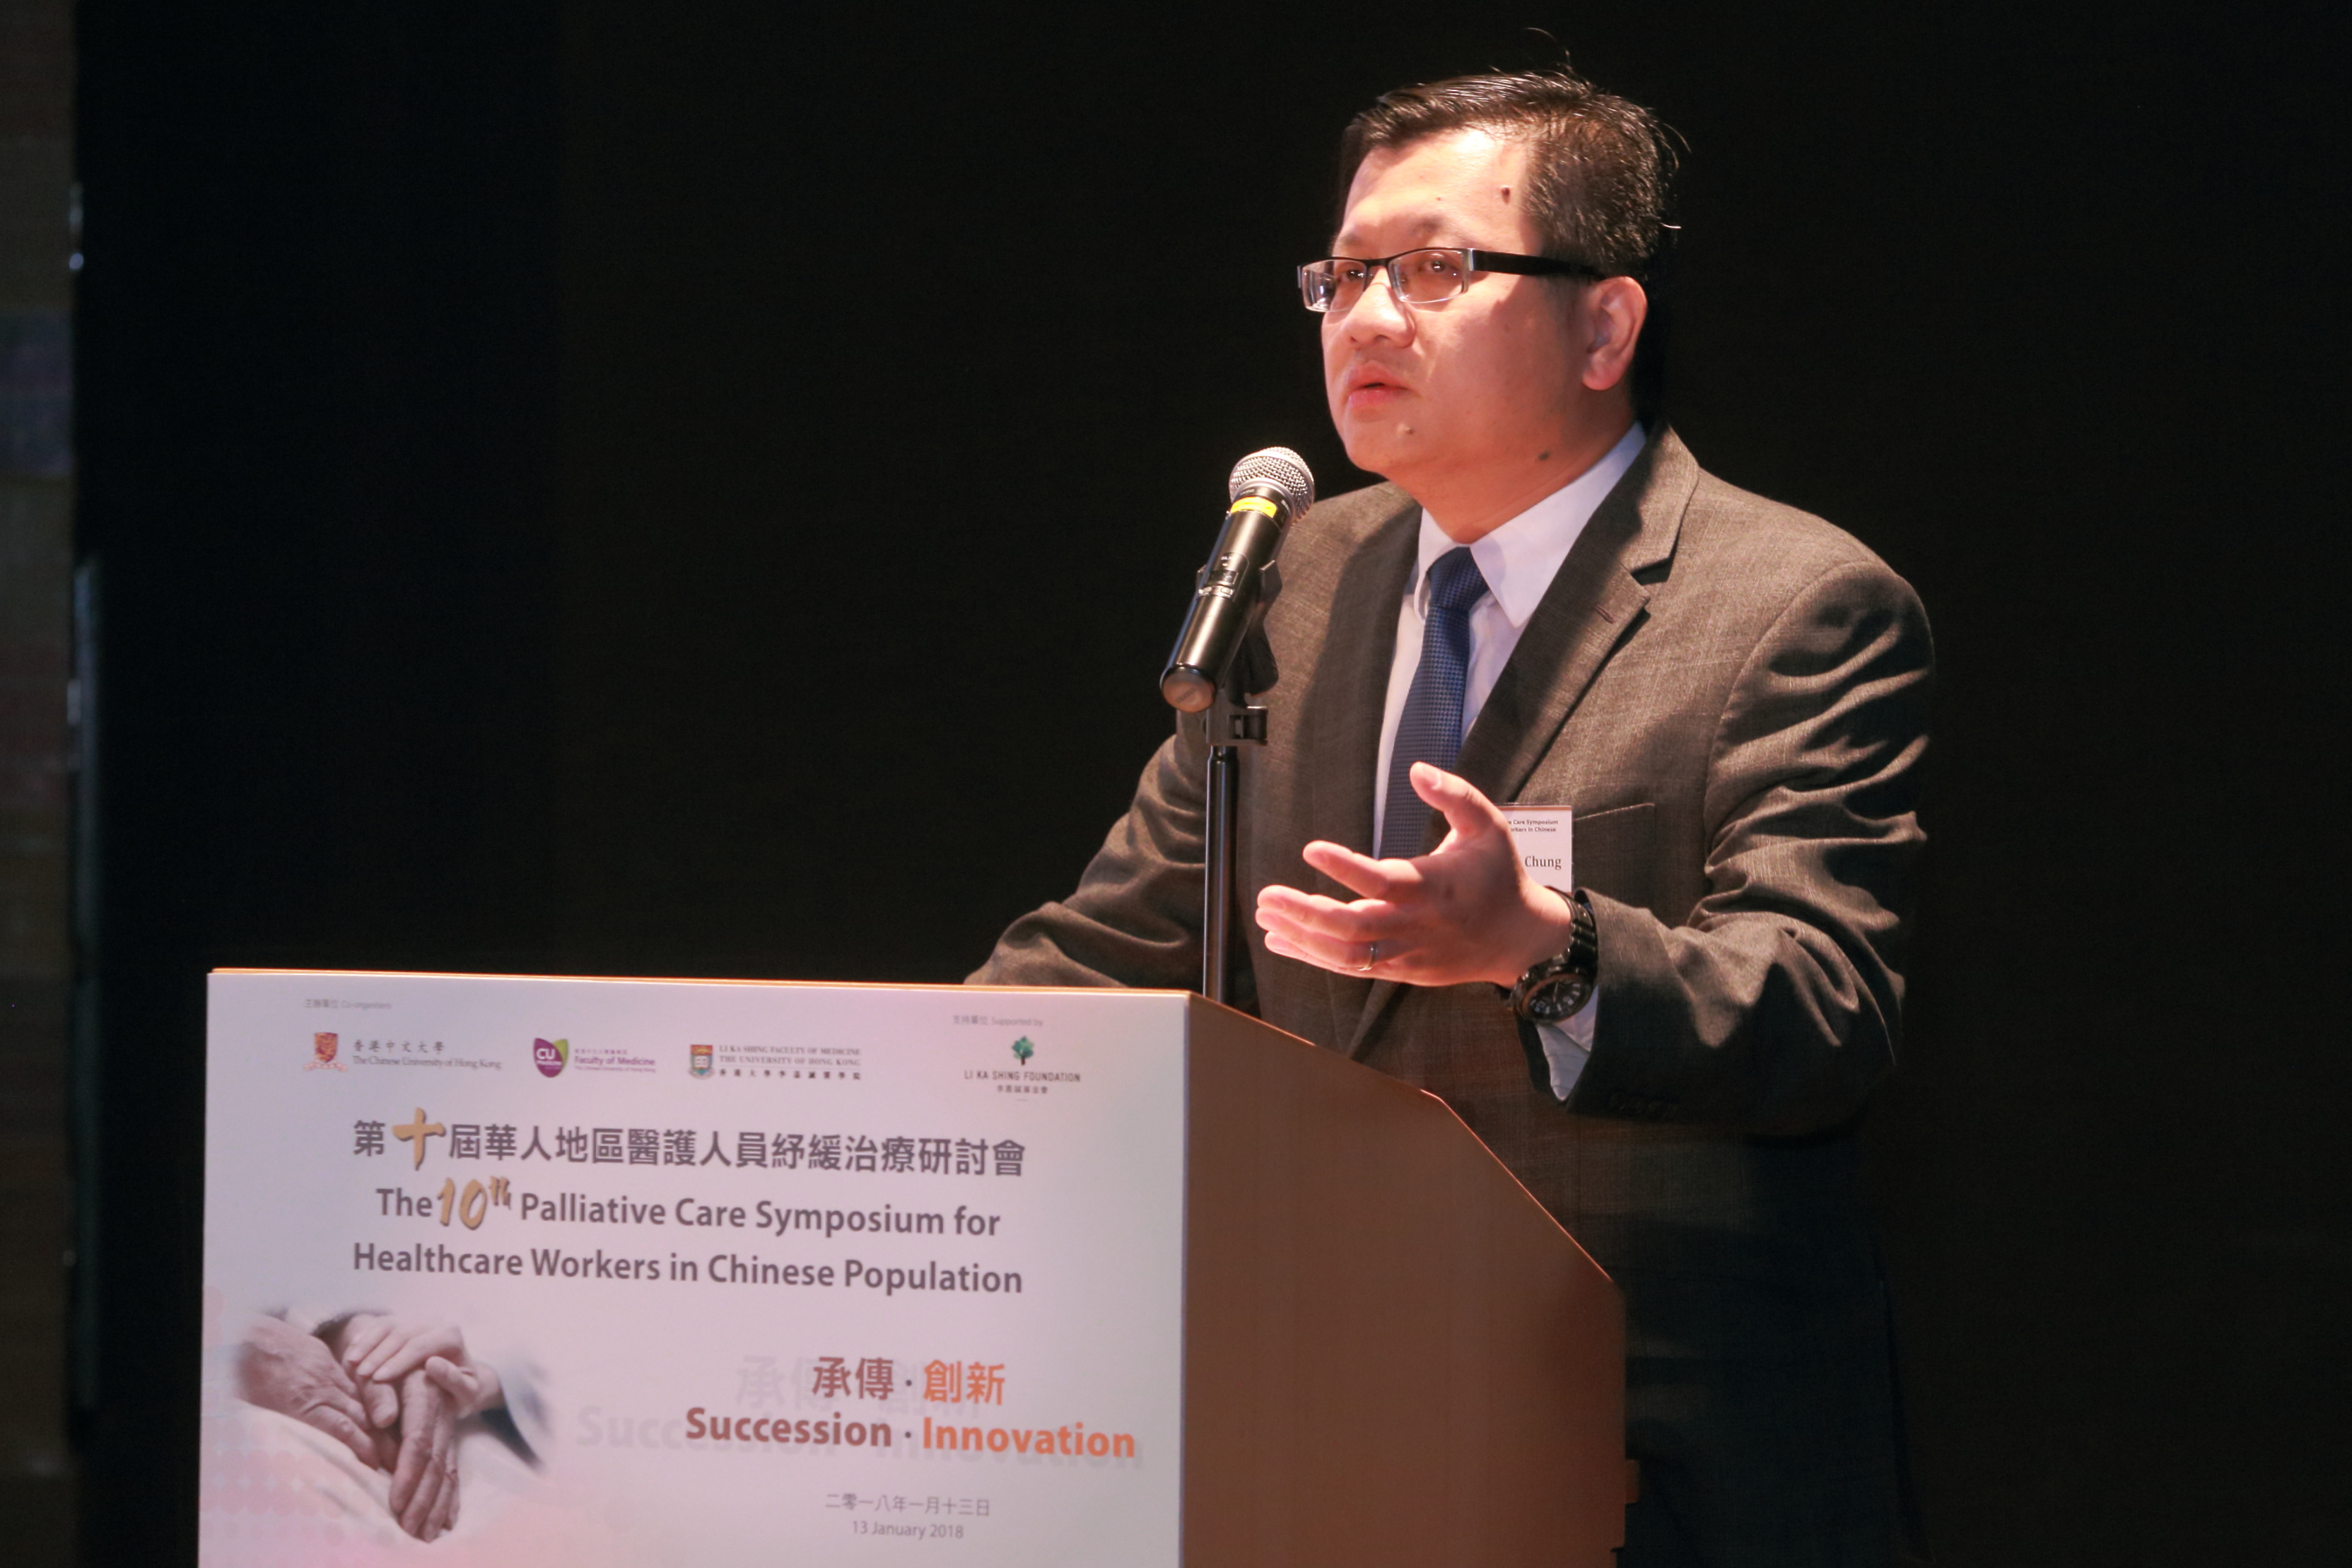 One of the keynote speakers – Dr. Tai Chung LAM, Clinical Assistant Professor of the Department of Clinical Oncology of the Li Ka Shing Faculty of Medicine at HKU, shares on 'A 10-Year Territory-wide Review on Oncology Palliative Care Service in Public Cancer Centres: Identifying the Challenges Ahead'.